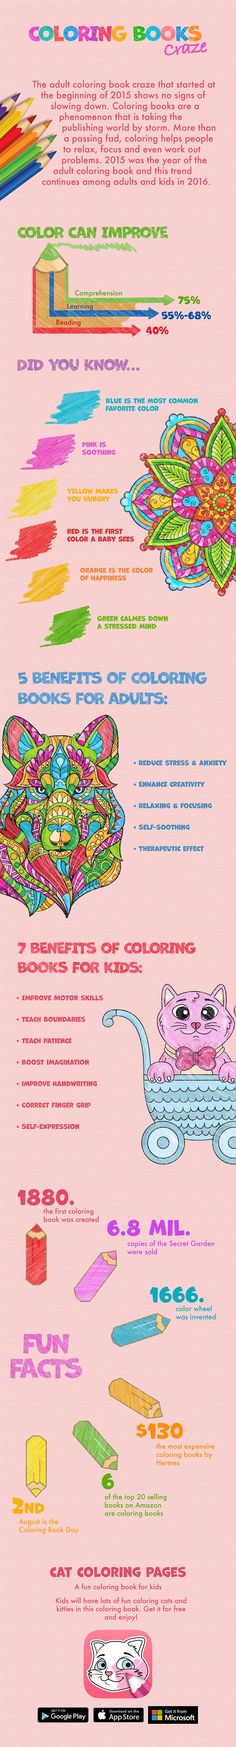 Galerry coloring books for adults benefits